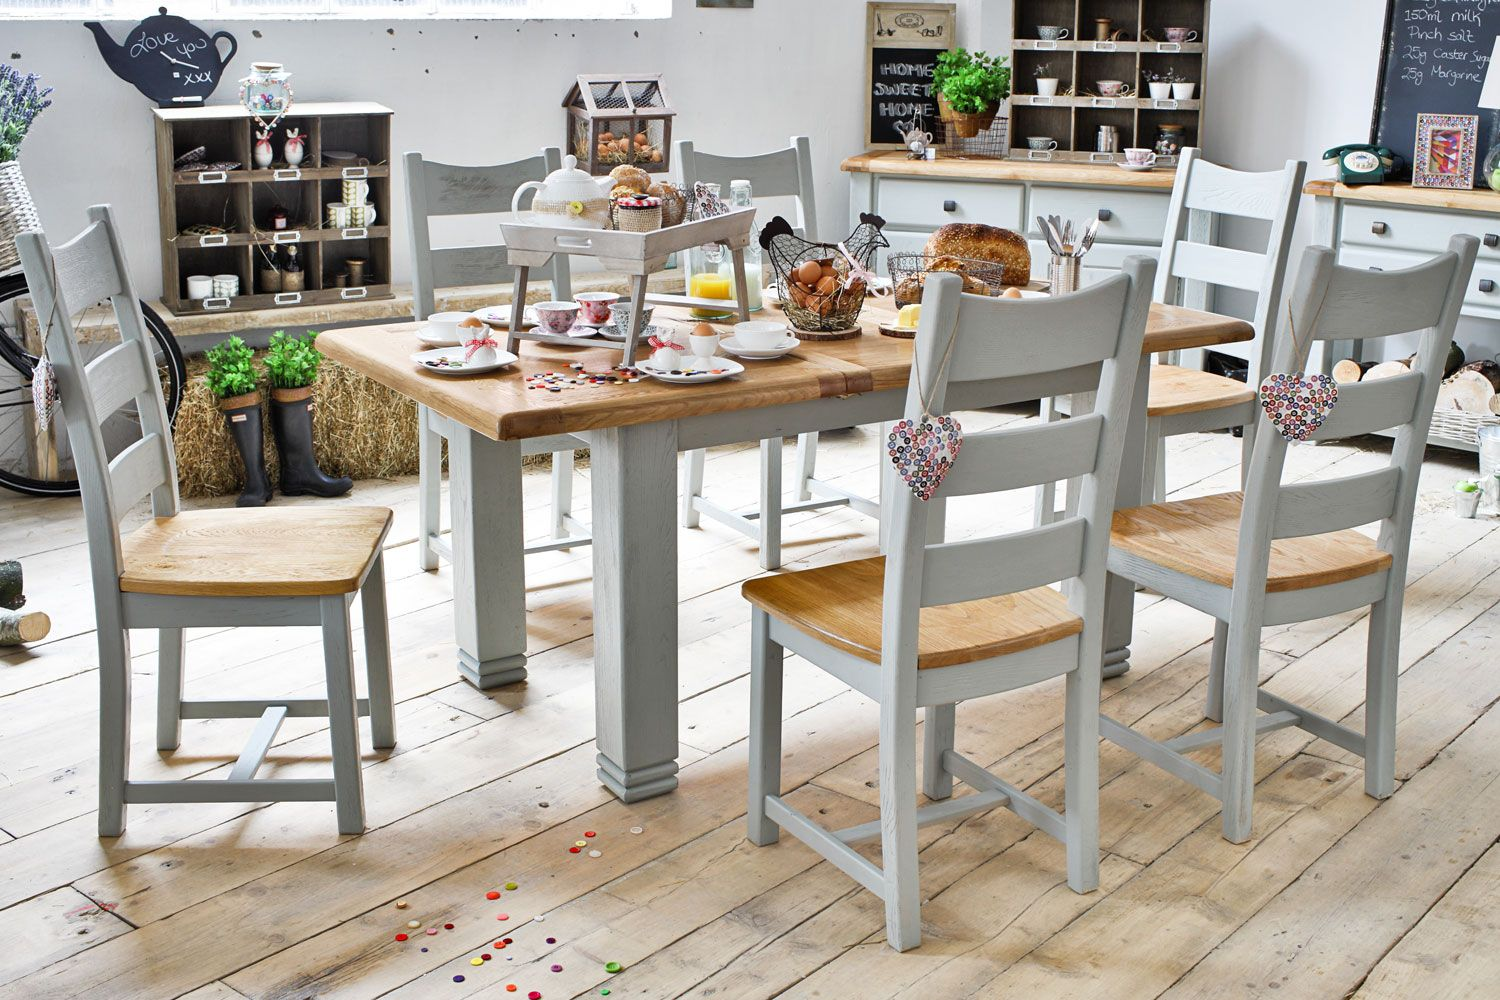 For A Range Of Dining And Living Furniture Including The Queenstown Set Shop At Harvey Norman In Store Or Online